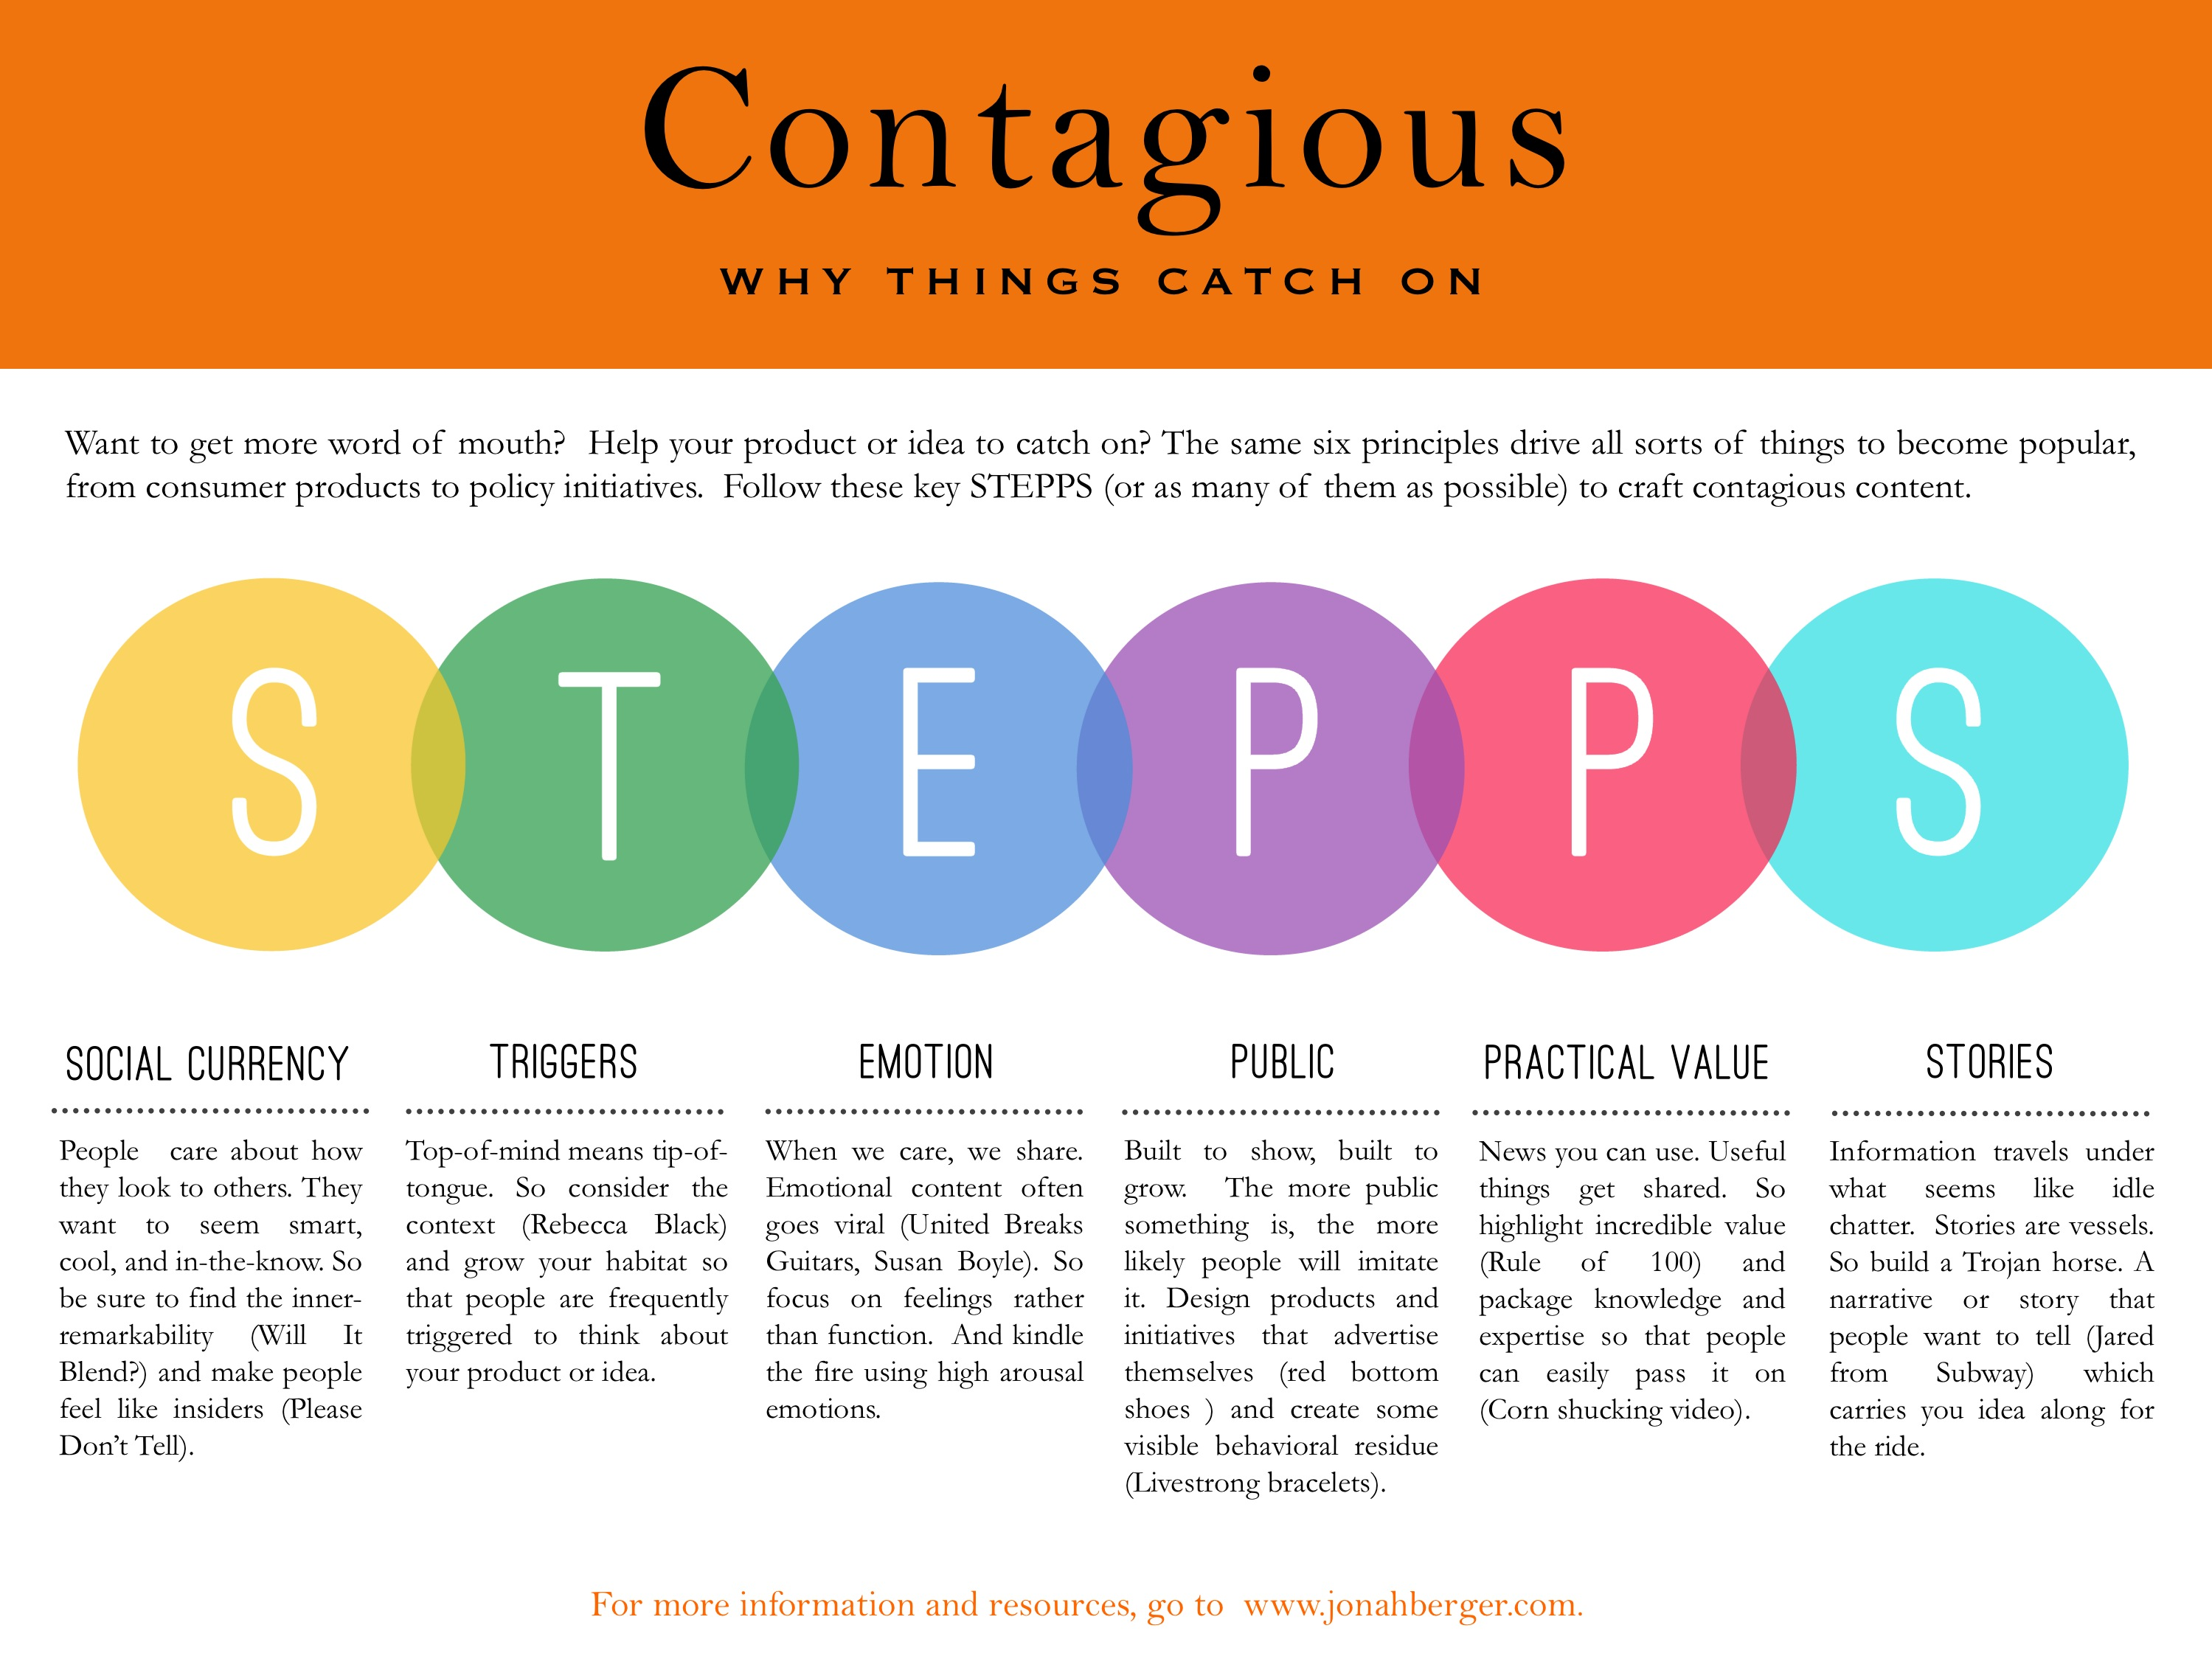 Book Talk: Contagious by Jonah Berger